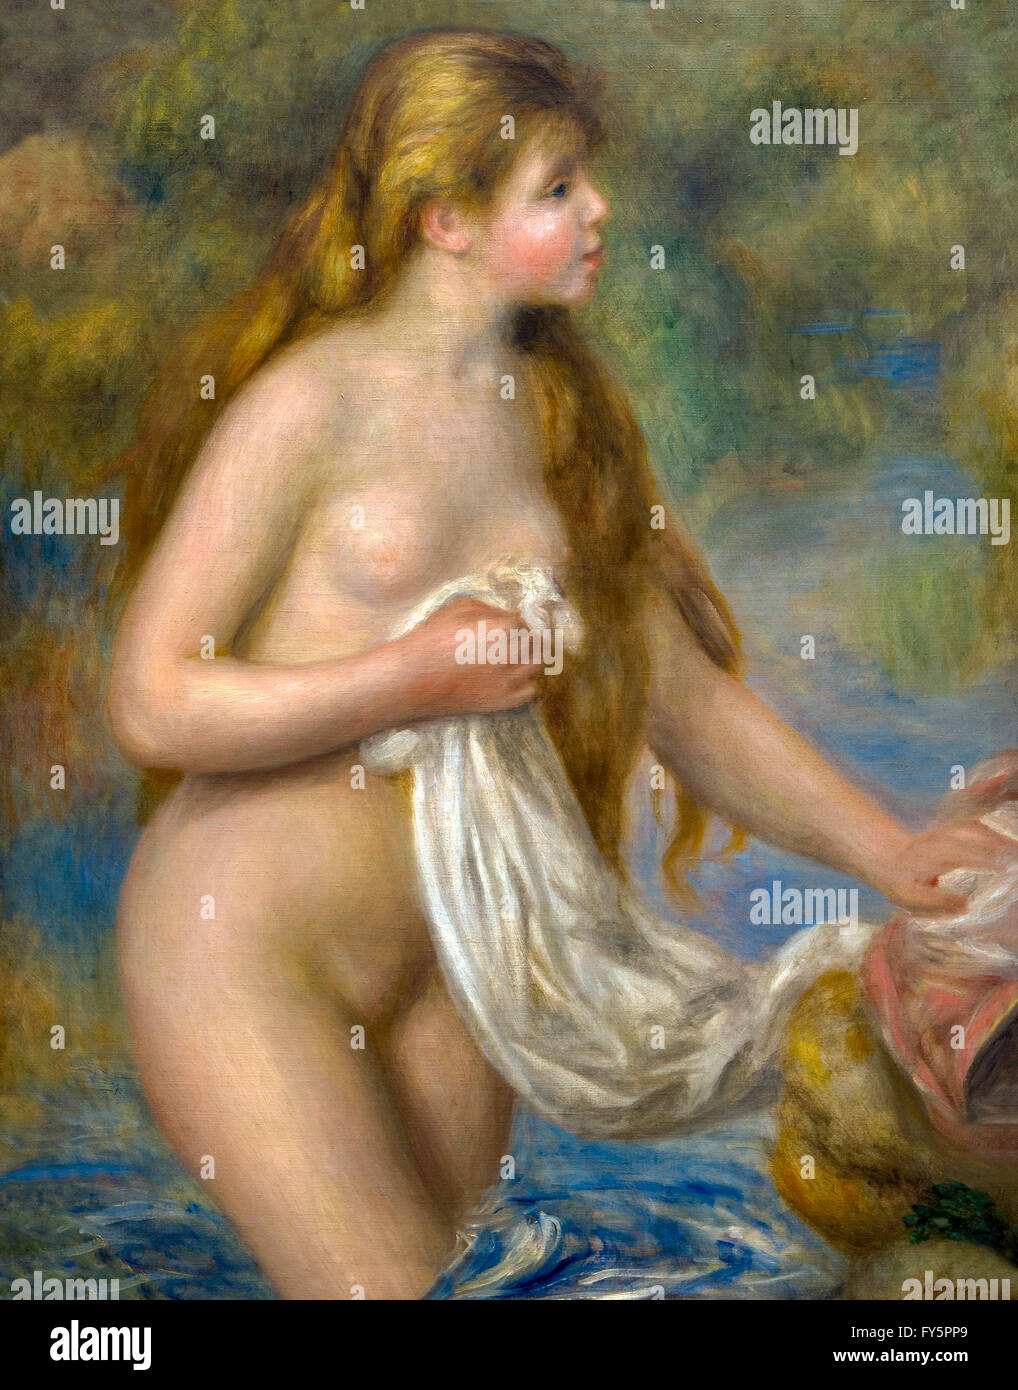 Bather with Long Hair, Baigneuse aux Cheveux Longs, by Pierre-Auguste Renoir, circa 1895, Musee de L'Orangerie, - Stock Image